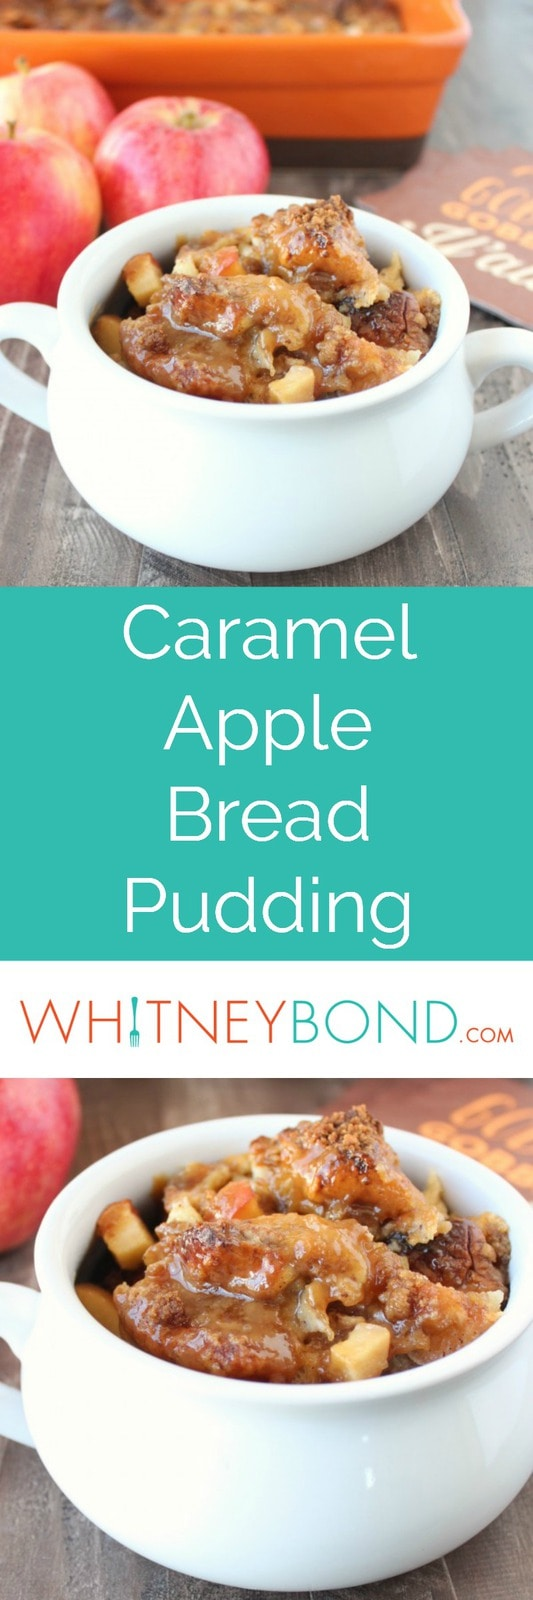 This fall inspired Caramel Apple Bread Pudding recipe, prepared with Hawaiian rolls & caramel sauce, is easy to make & delicious for breakfast or dessert!